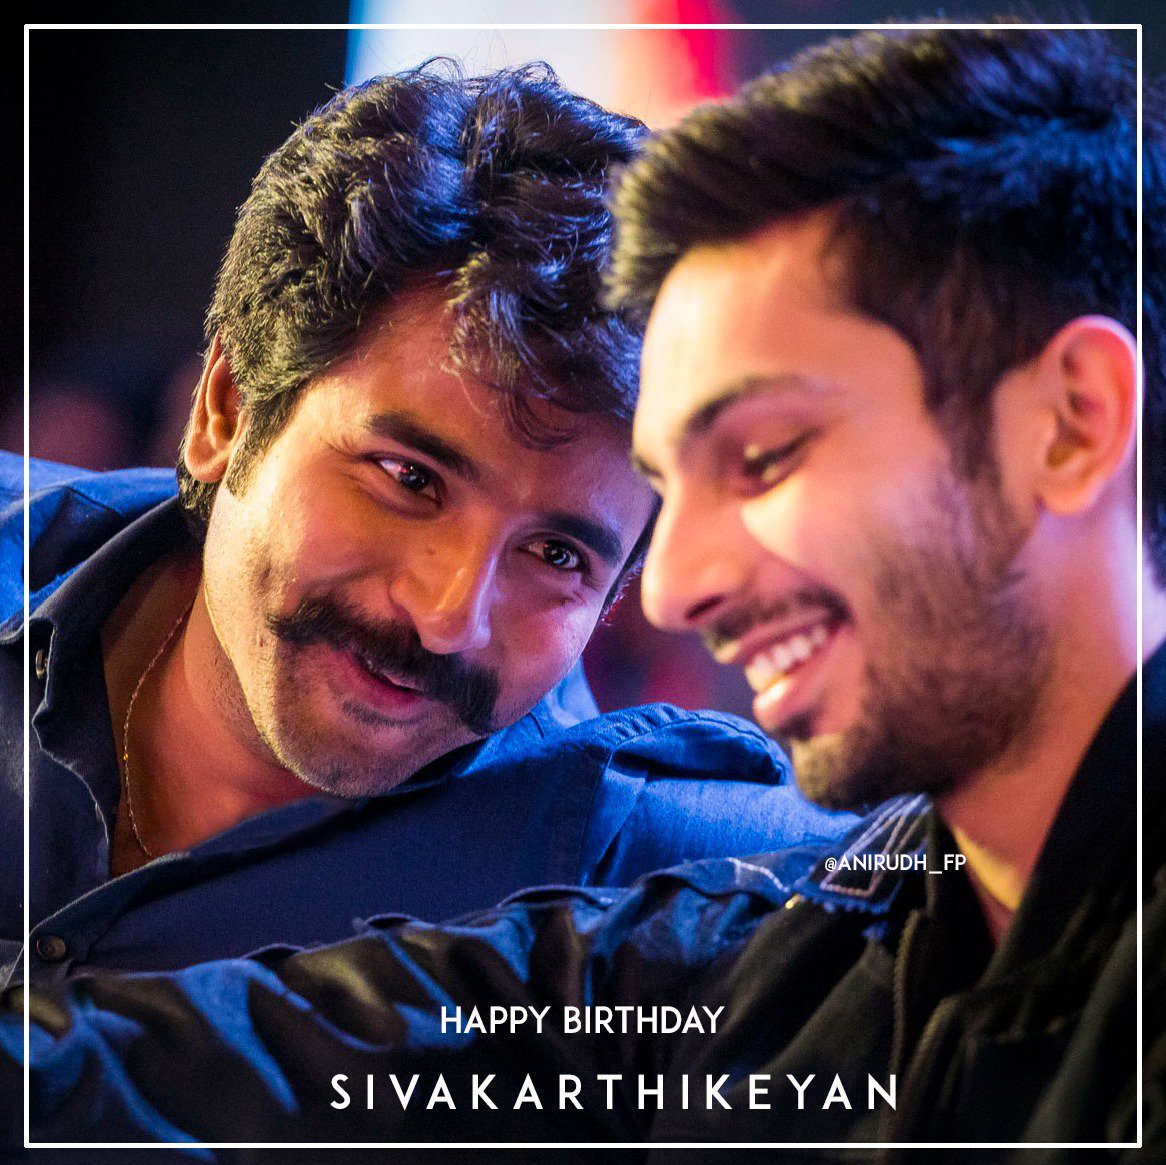 Wishing @anirudhofficial bestest  friend in industry & brother @Siva_Kartikeyan a very happiest birthday ❤️   You both started together & achieved a lot together🔥 Being there for eachother always⭐Let this beautiful friendship continue forever:) 😍  Love, Anirudhians